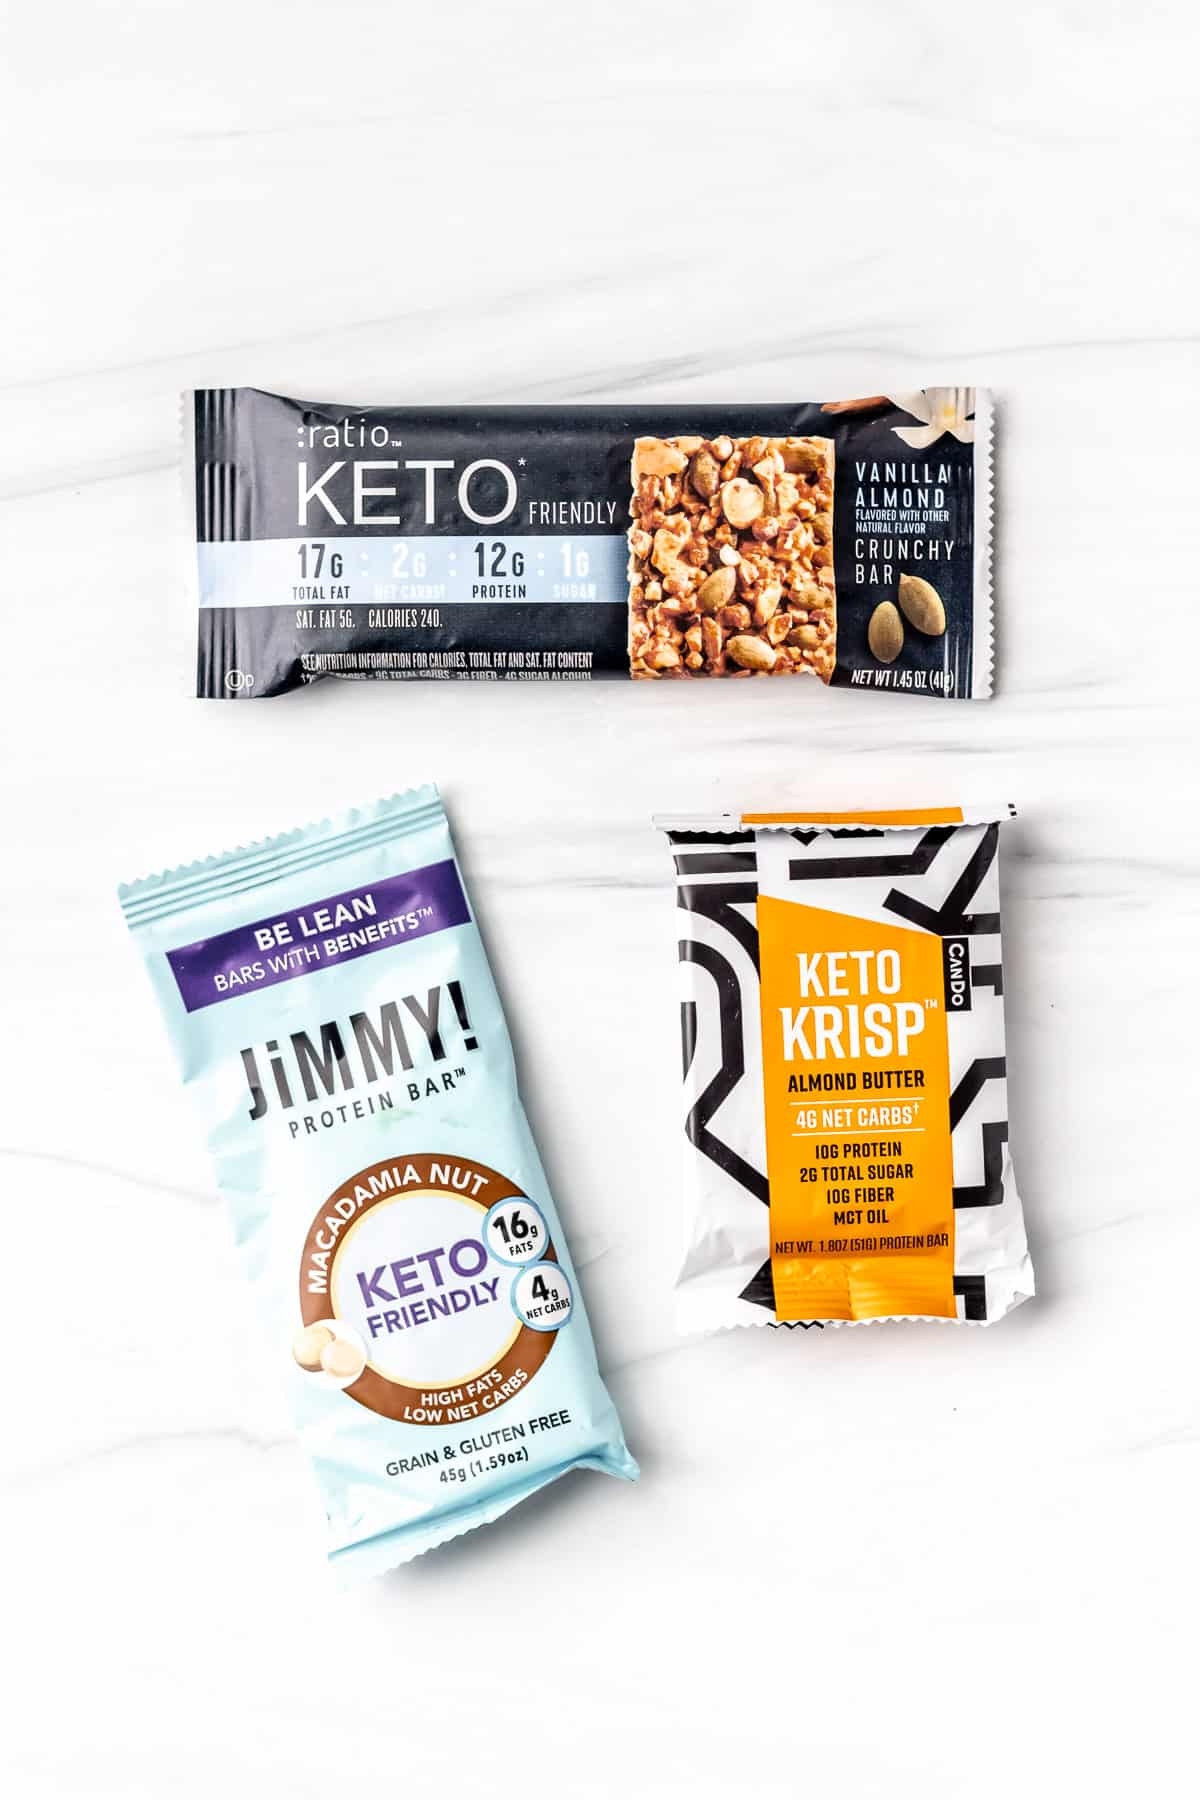 3 Keto snack bars on a white background